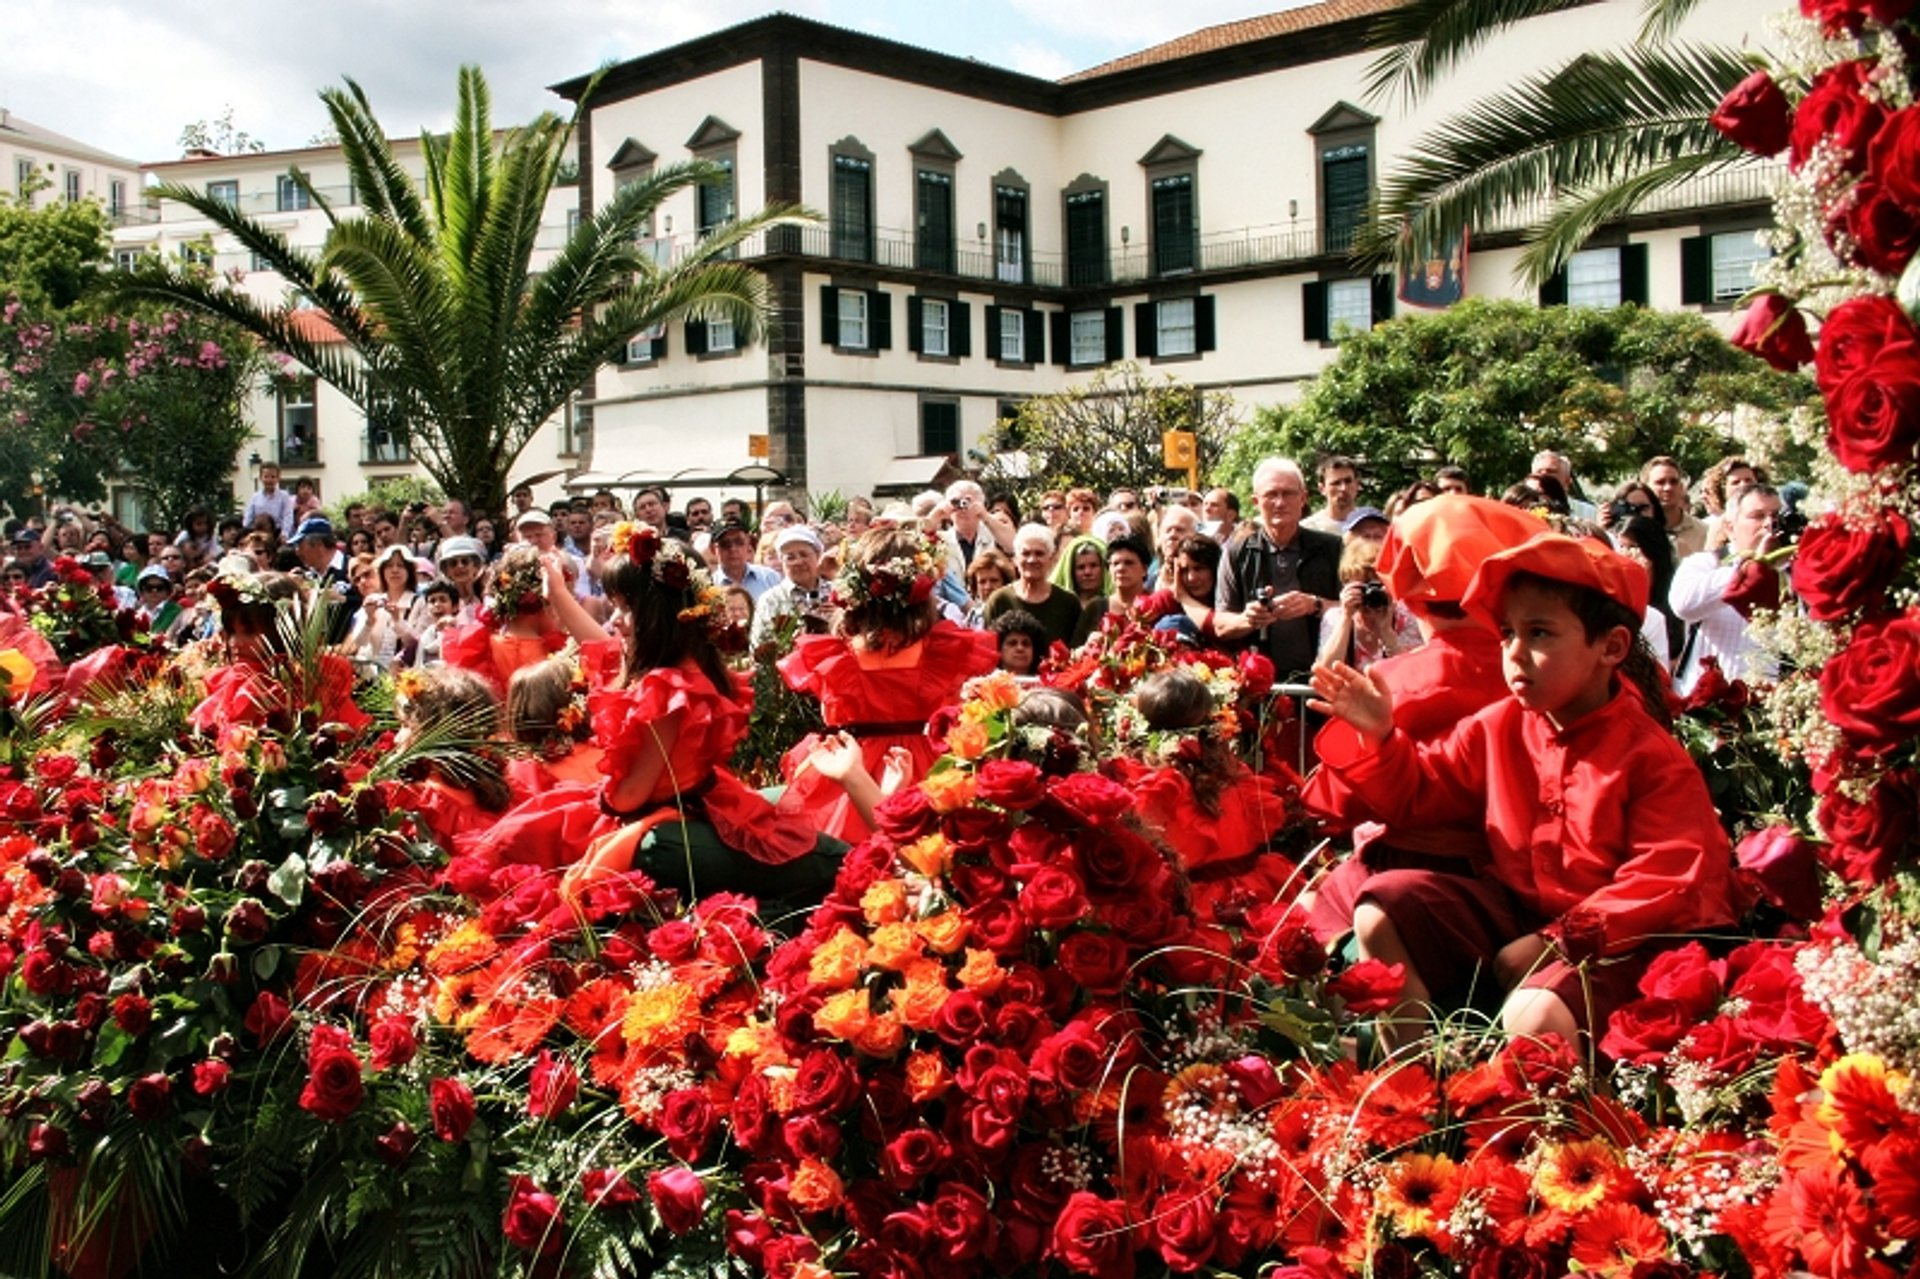 Madeira Flower Festival in Madeira - Best Season 2020